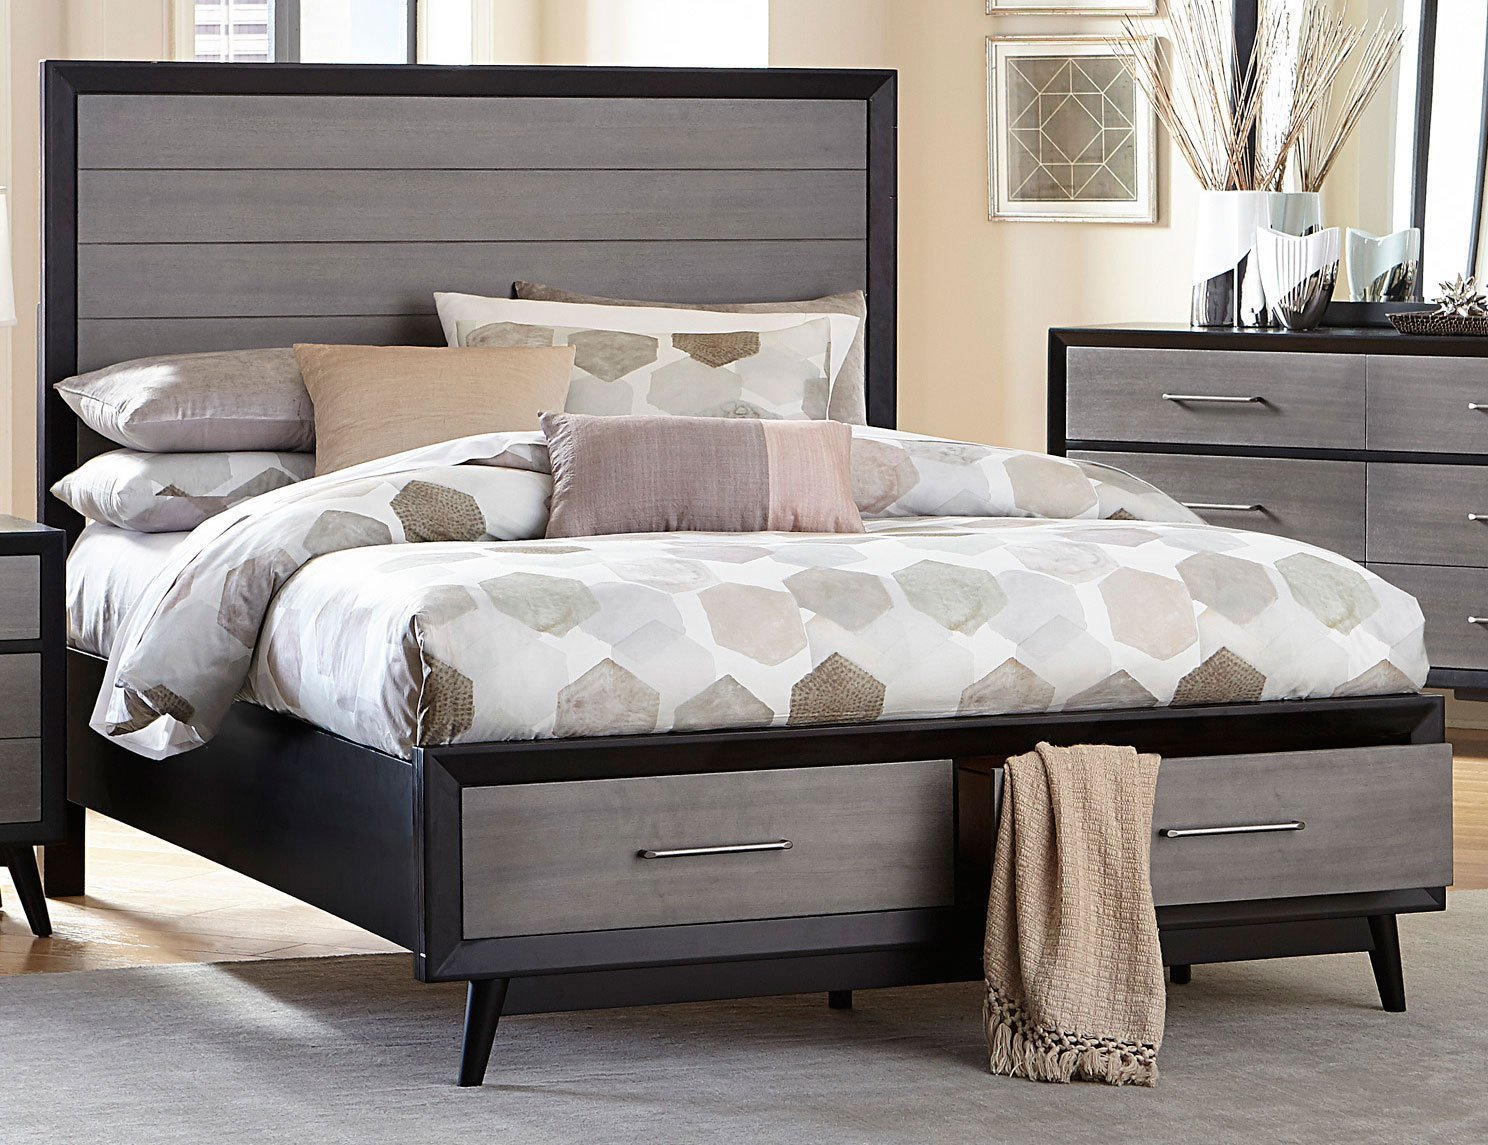 Best Contemporary Gray Black 6 Piece King Bedroom Set Raku With Pictures